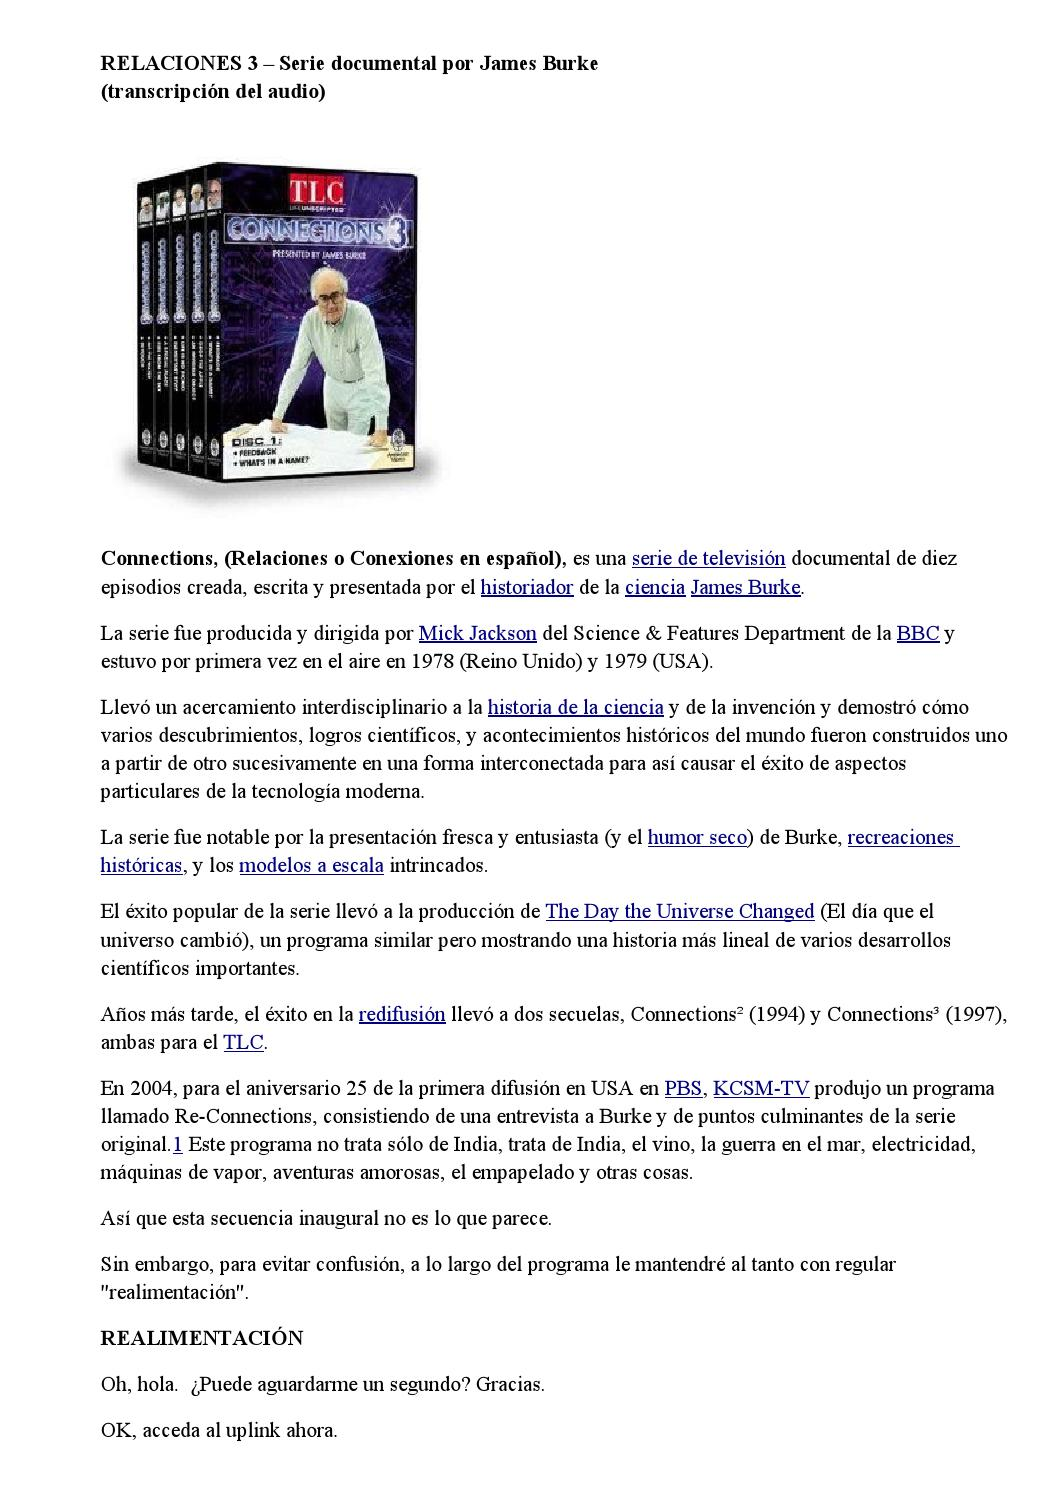 Relaciones 3 – serie documental por james burke by Jorge Arabito - issuu